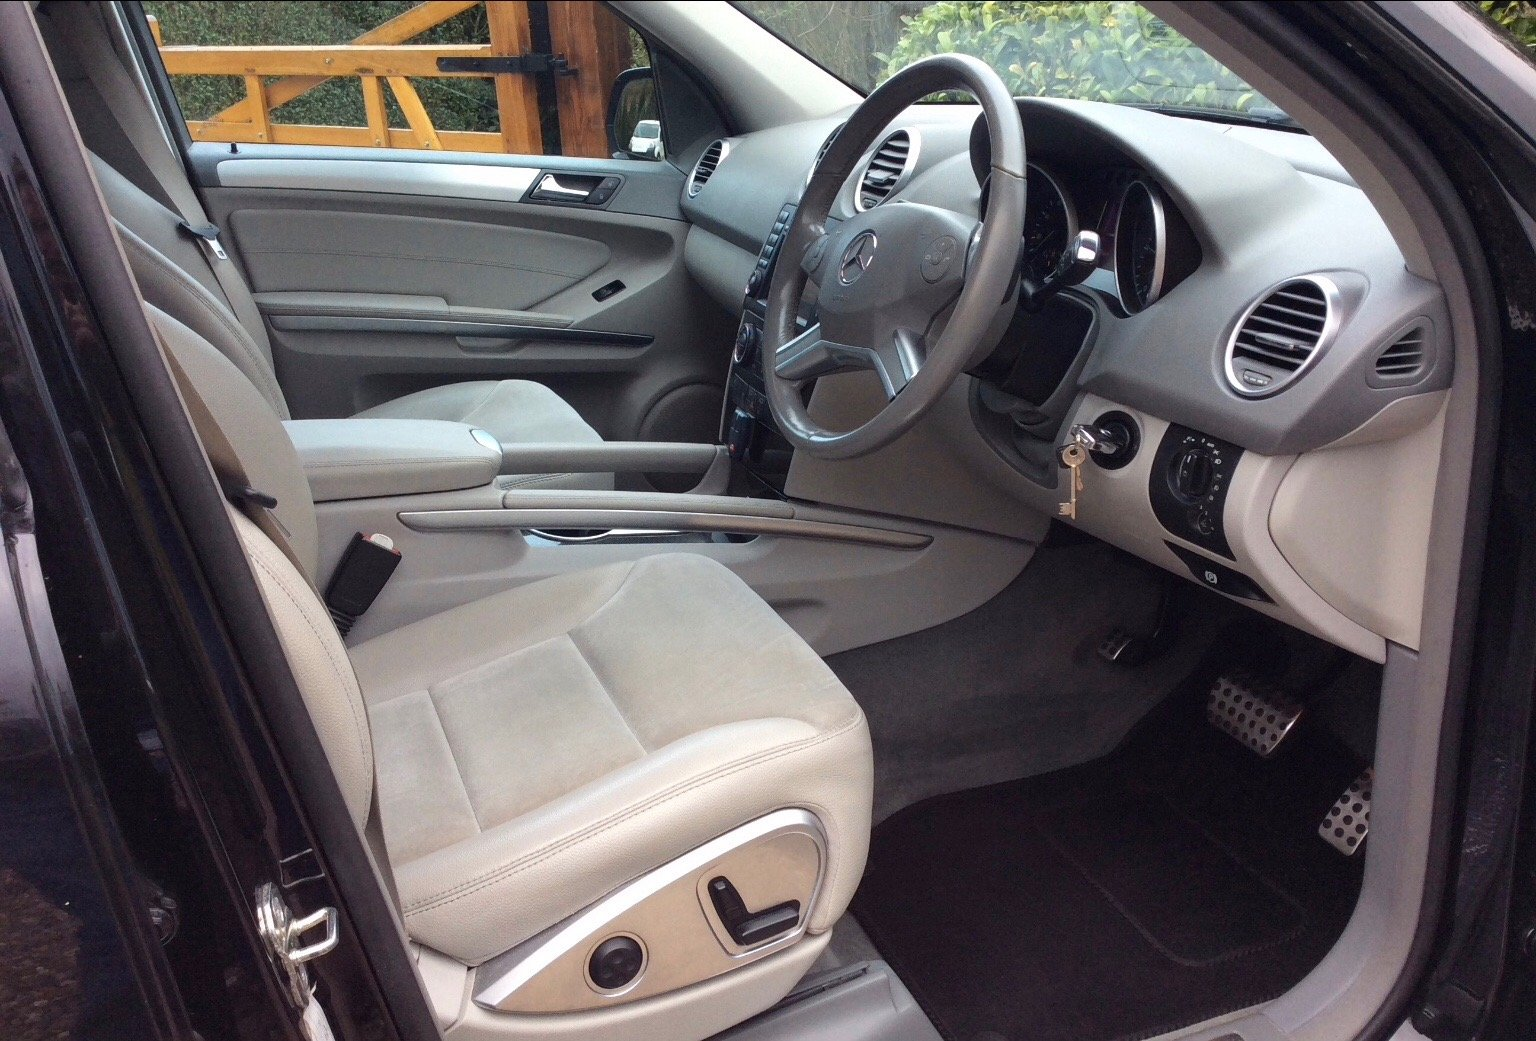 2010 MERCEDES ML 350 CDI SPORT  For Sale (picture 6 of 6)